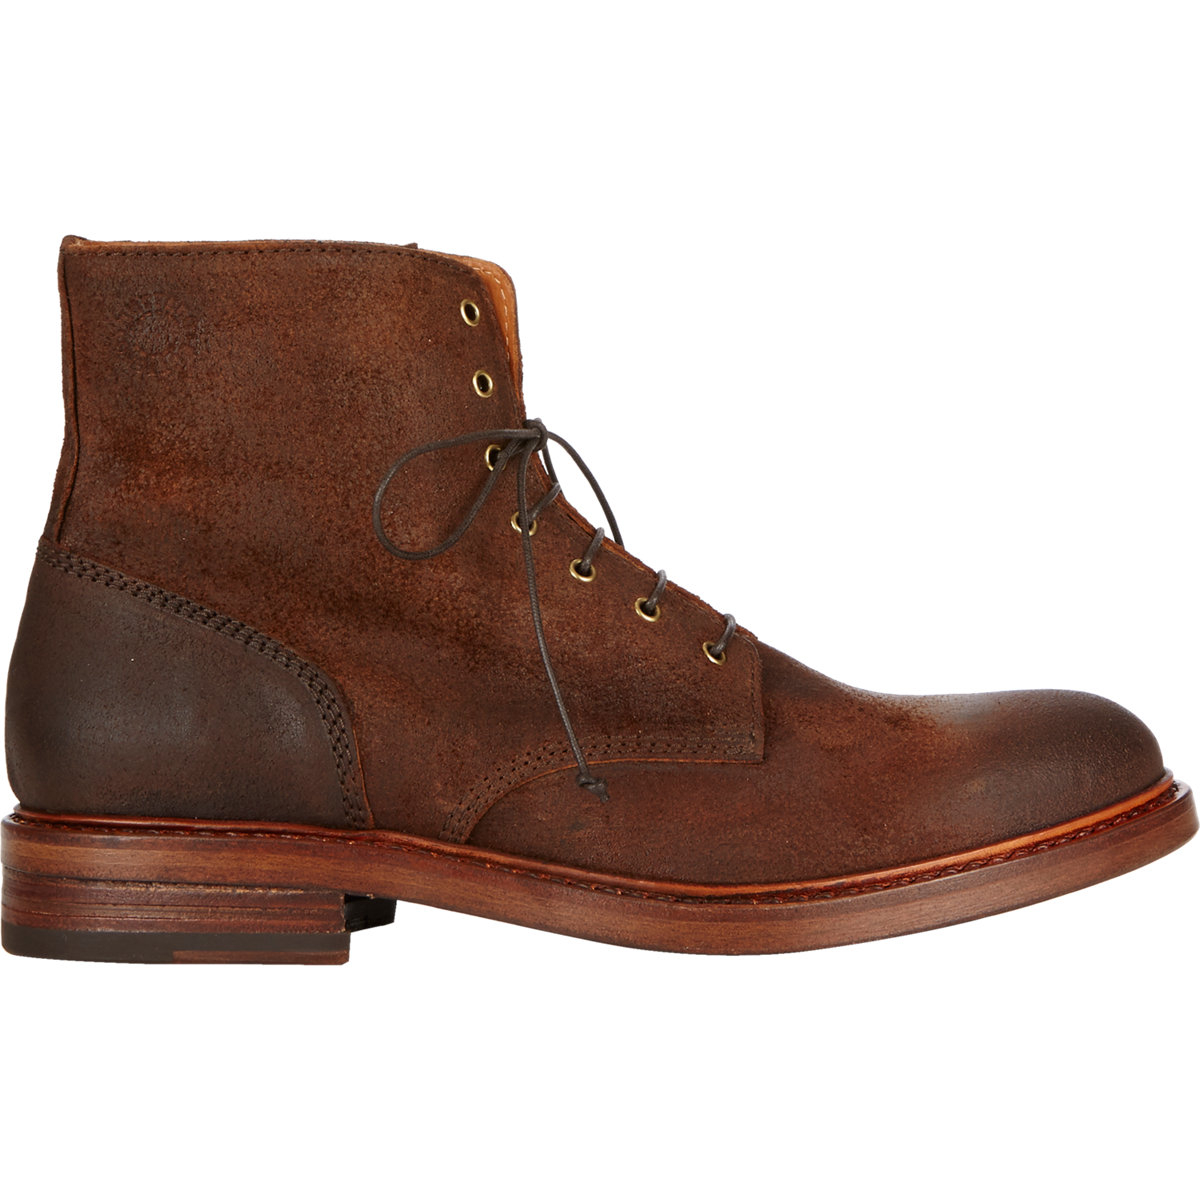 buttero suede lace up boots in brown for lyst